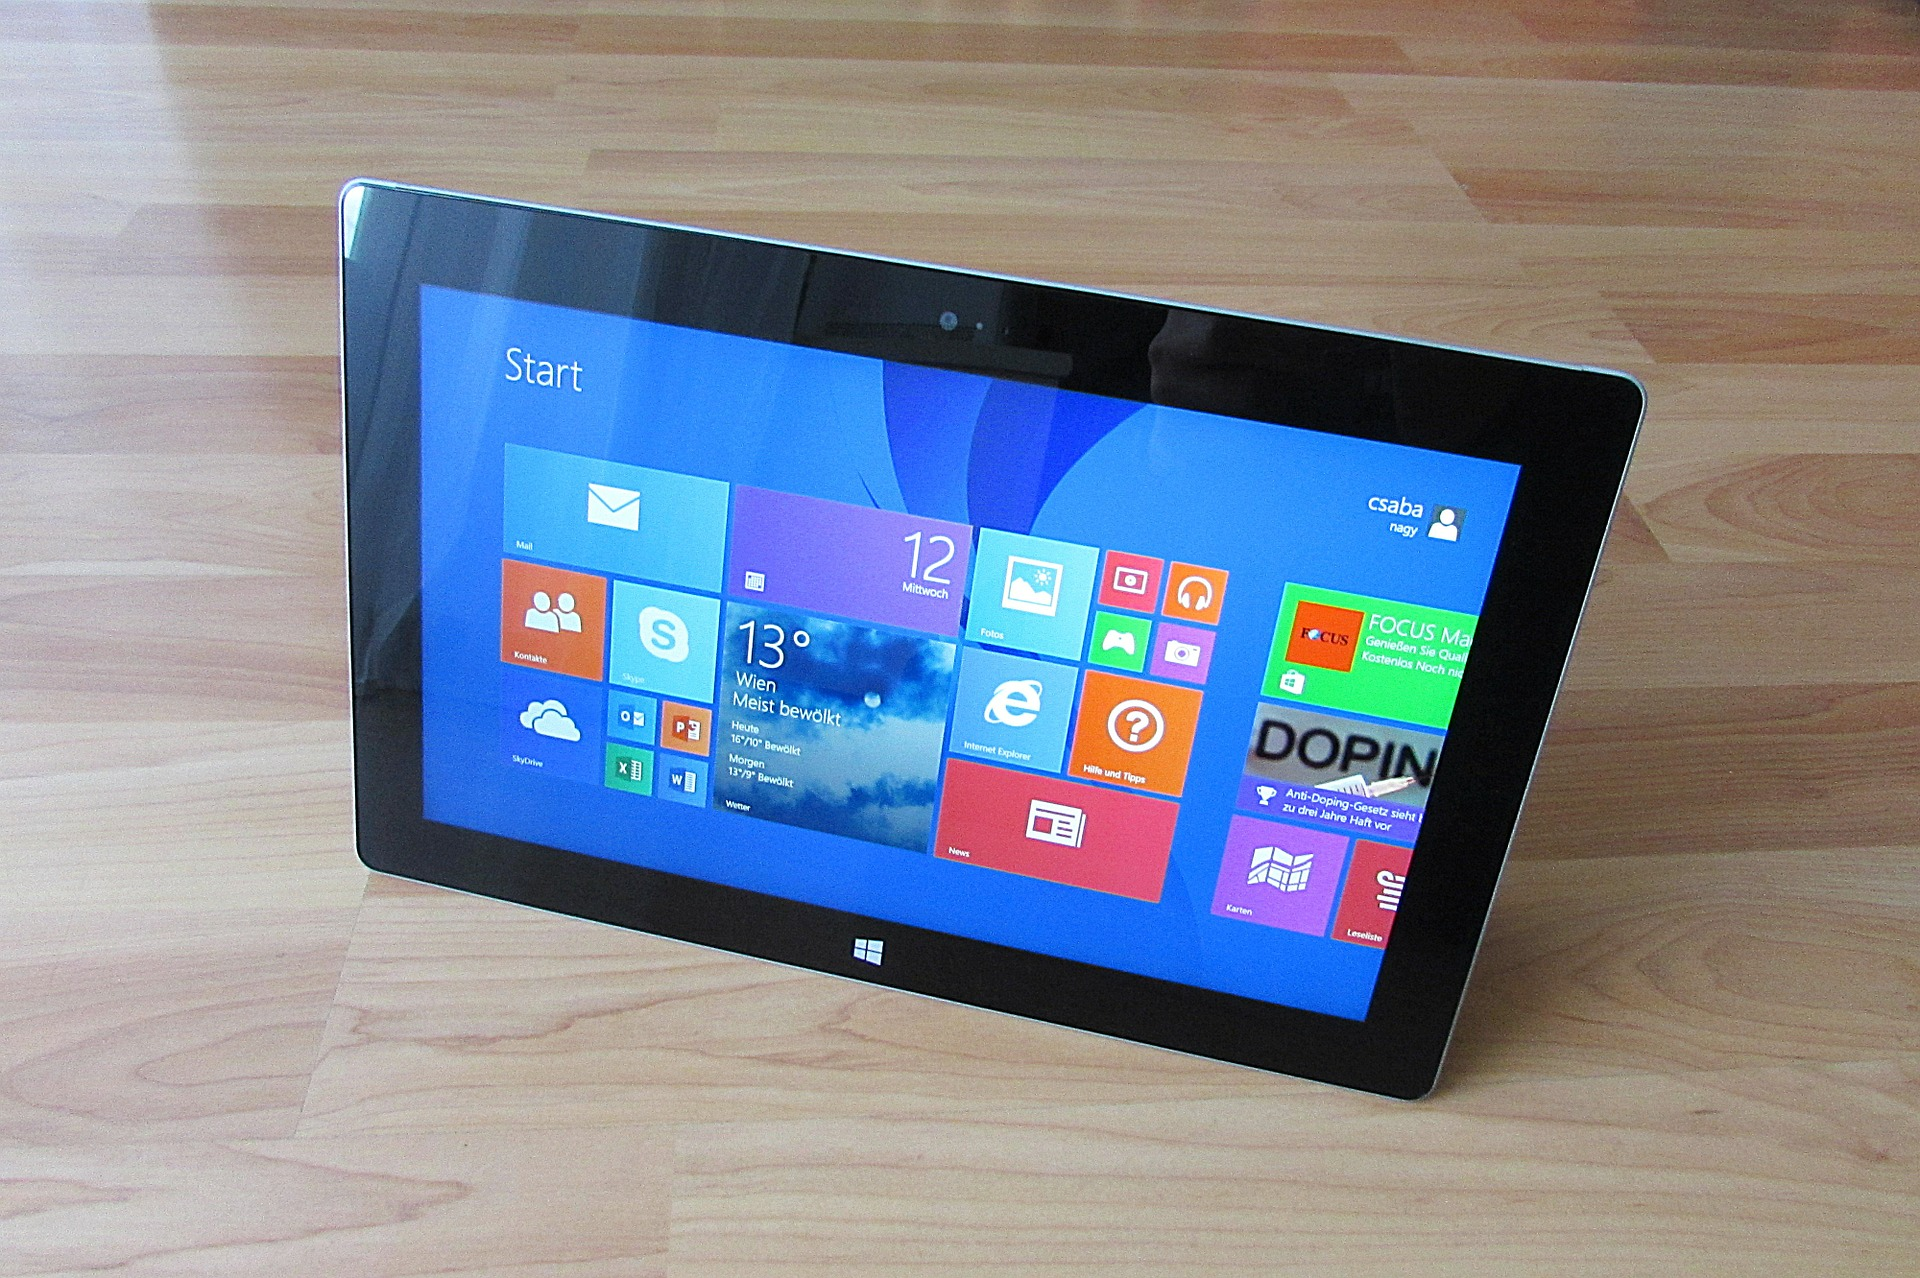 Microsoft aims to have ubiquity amongst all device platforms running Windows, by Windows 10.